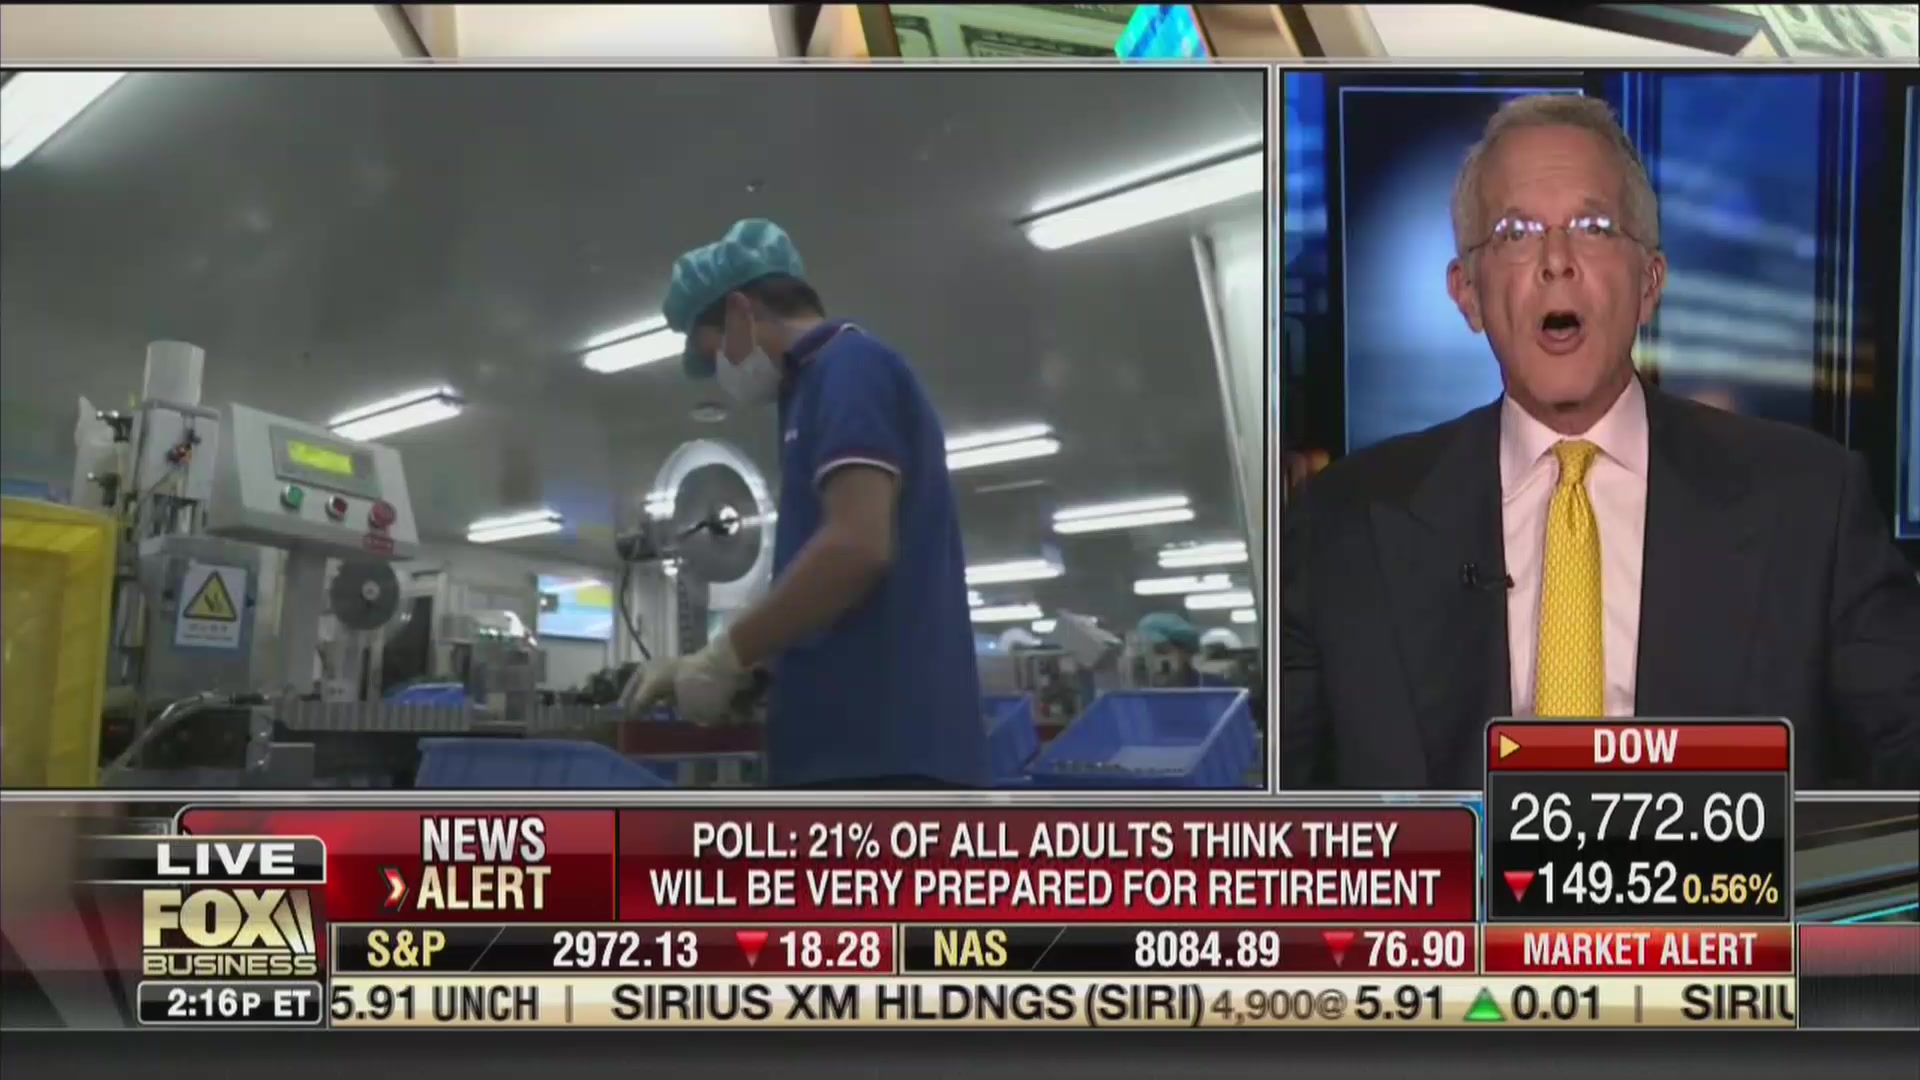 Fox Business Guest: 'Great Blessing' That Millions of Americans Expect to Never Retire